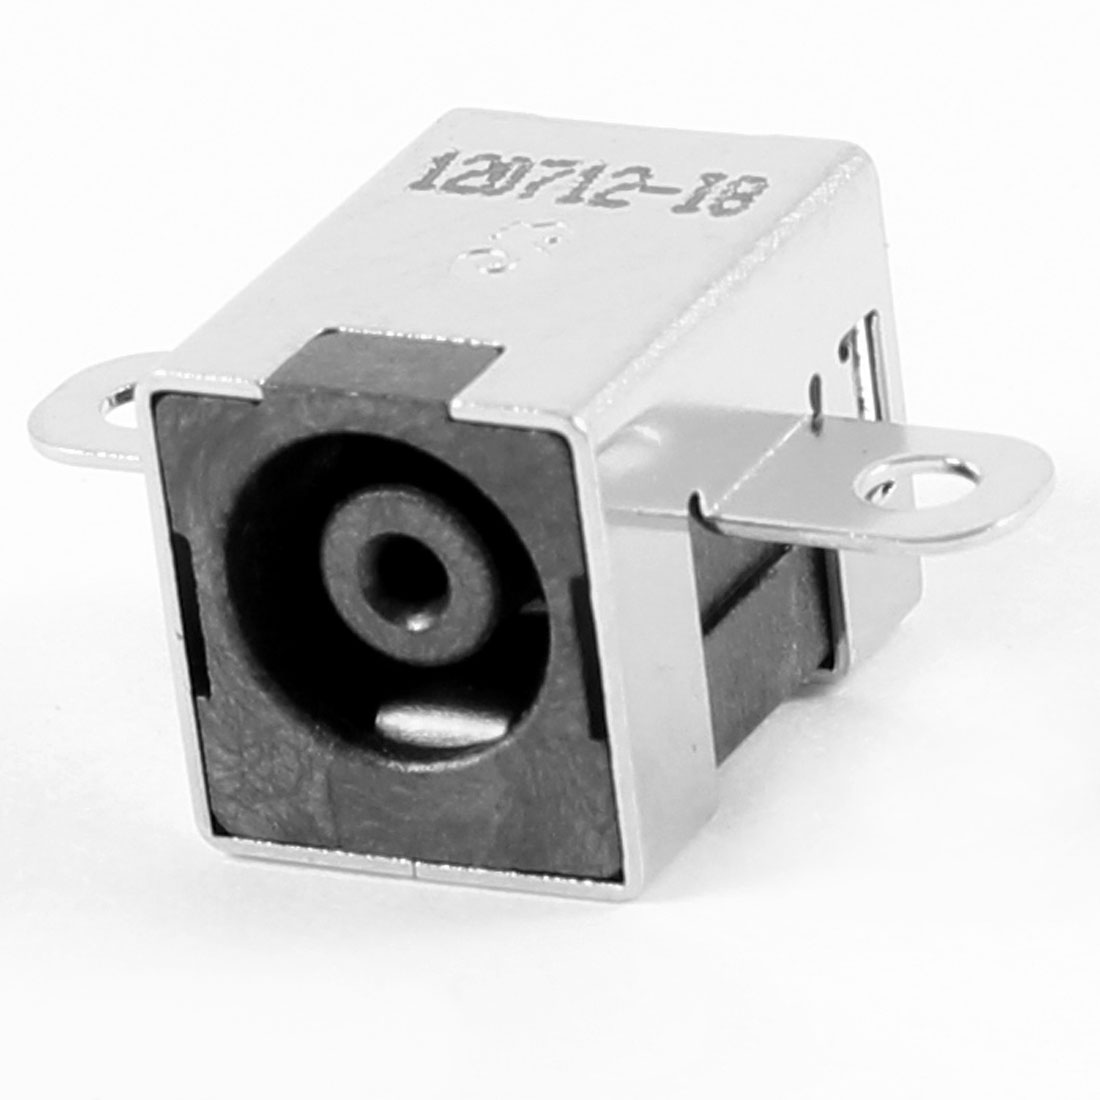 PJ224 DC Power Jack Connector Socket for LG R510